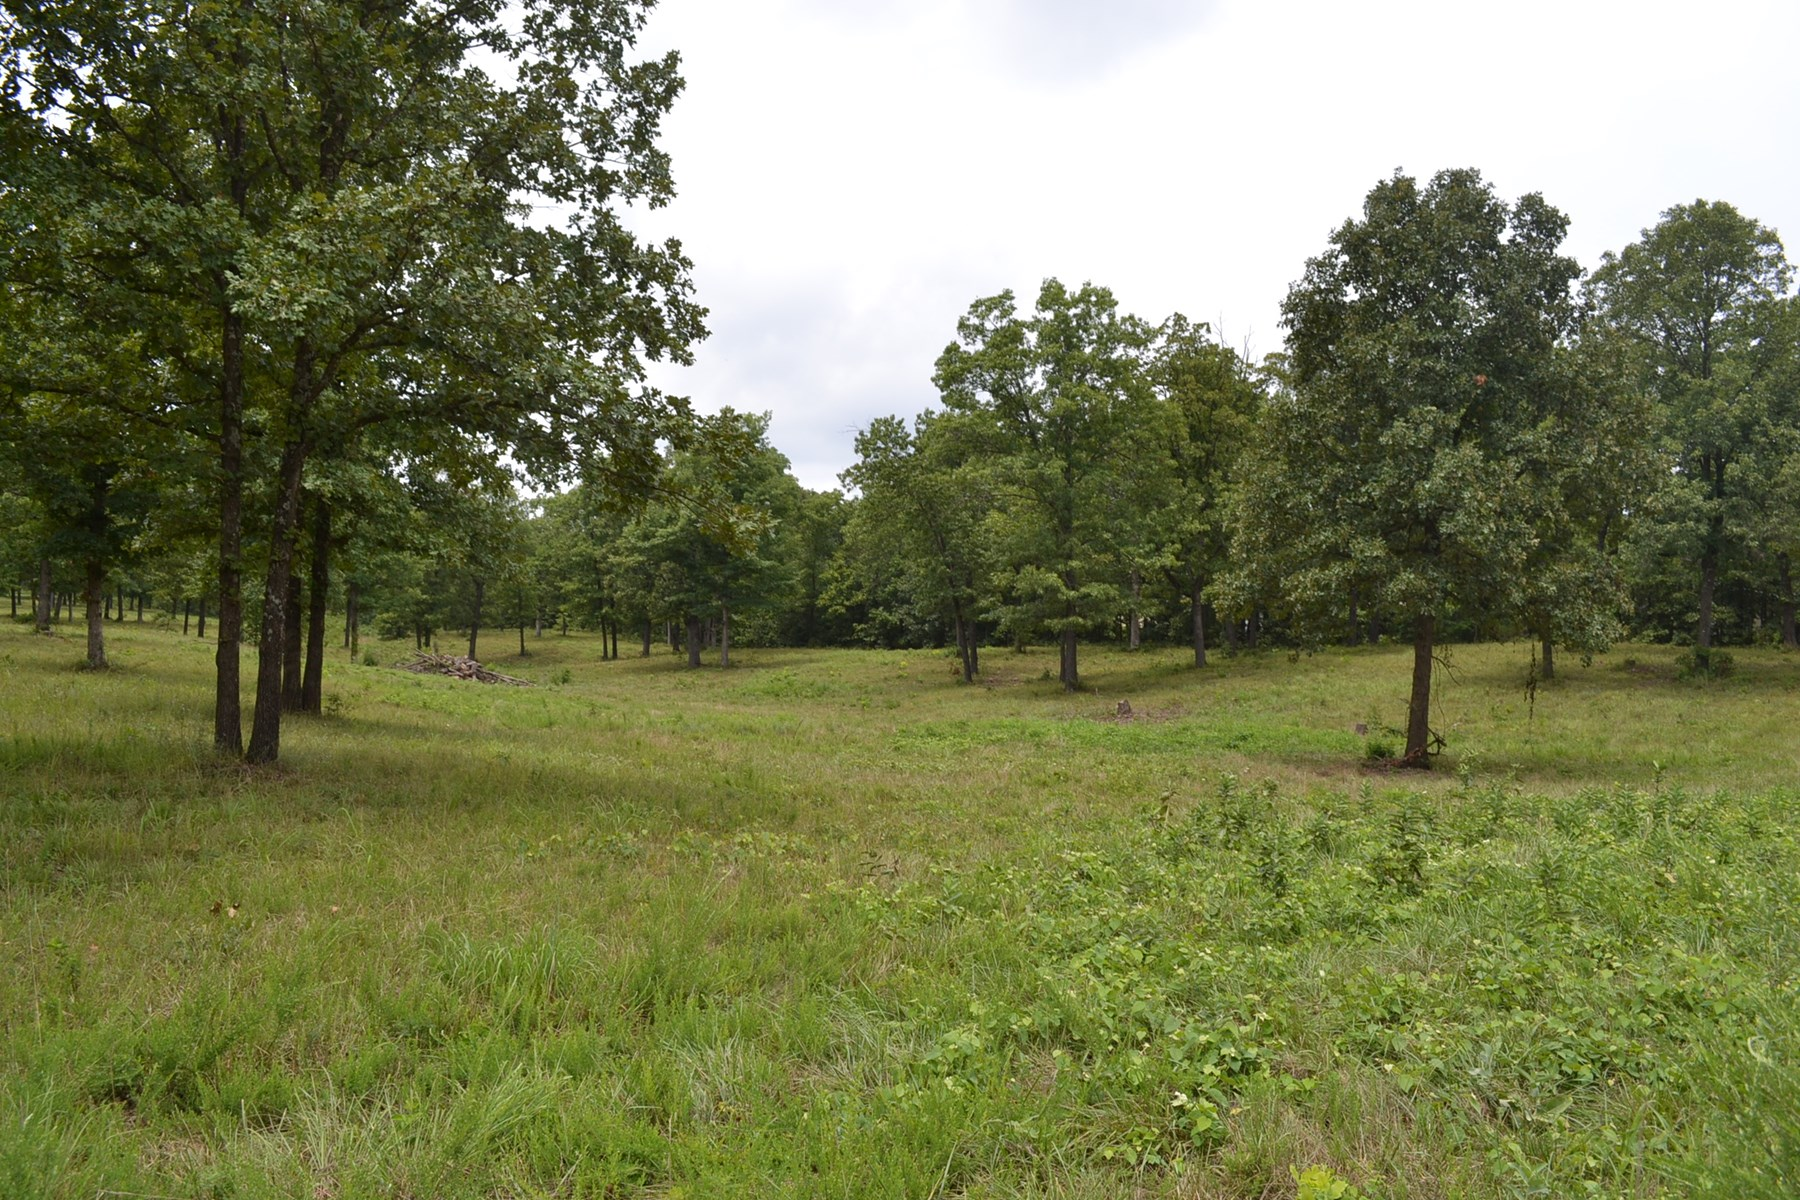 10 Acres - 2 Surveyed 5 Acre Lots - Building Sites